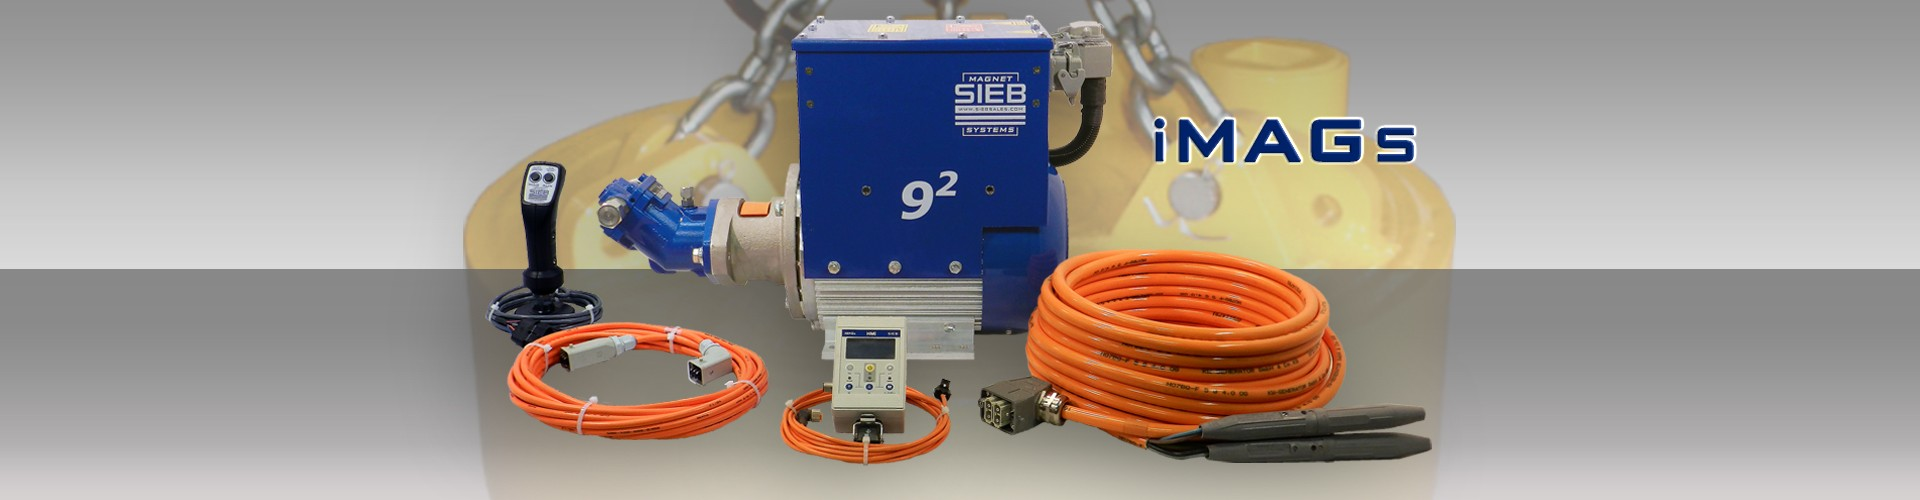 Sieb Magnet Systems Lifting Magnets Generators 24 Volt Hydraulic Lift Wiring Diagram Integrated Shop Now